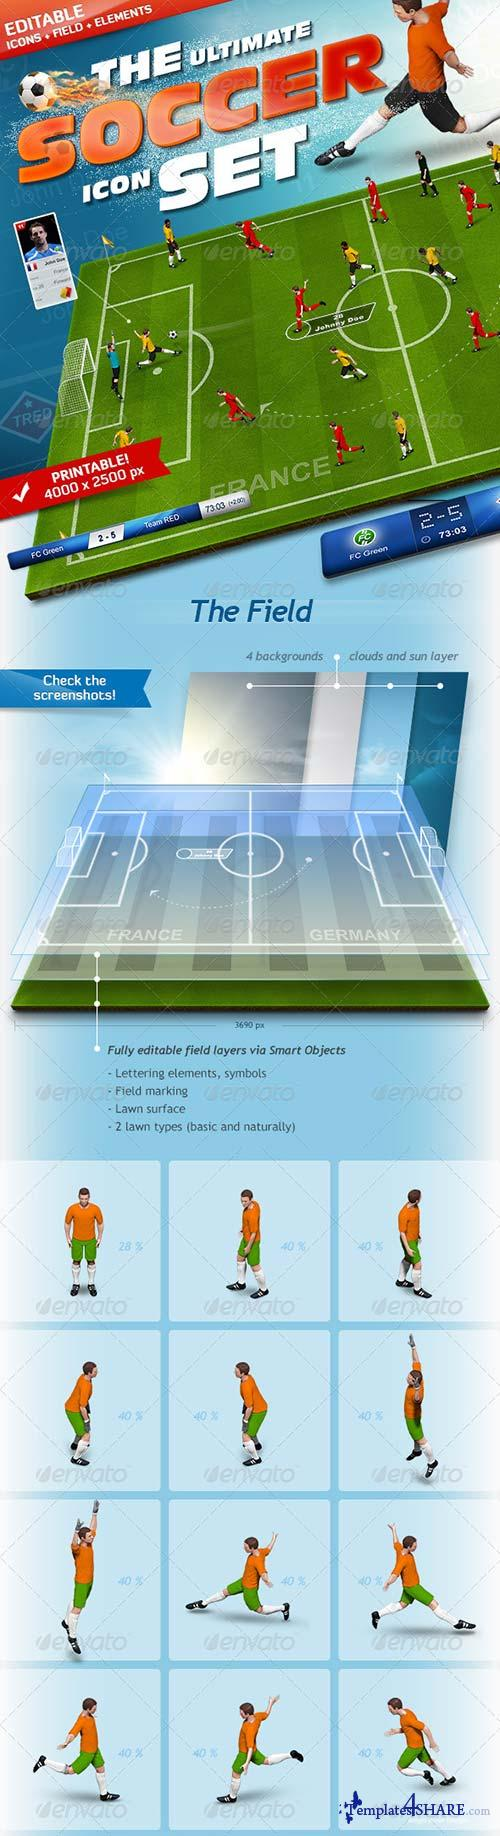 GraphicRiver The Soccer Set - Kicker Icons, Field and Elements